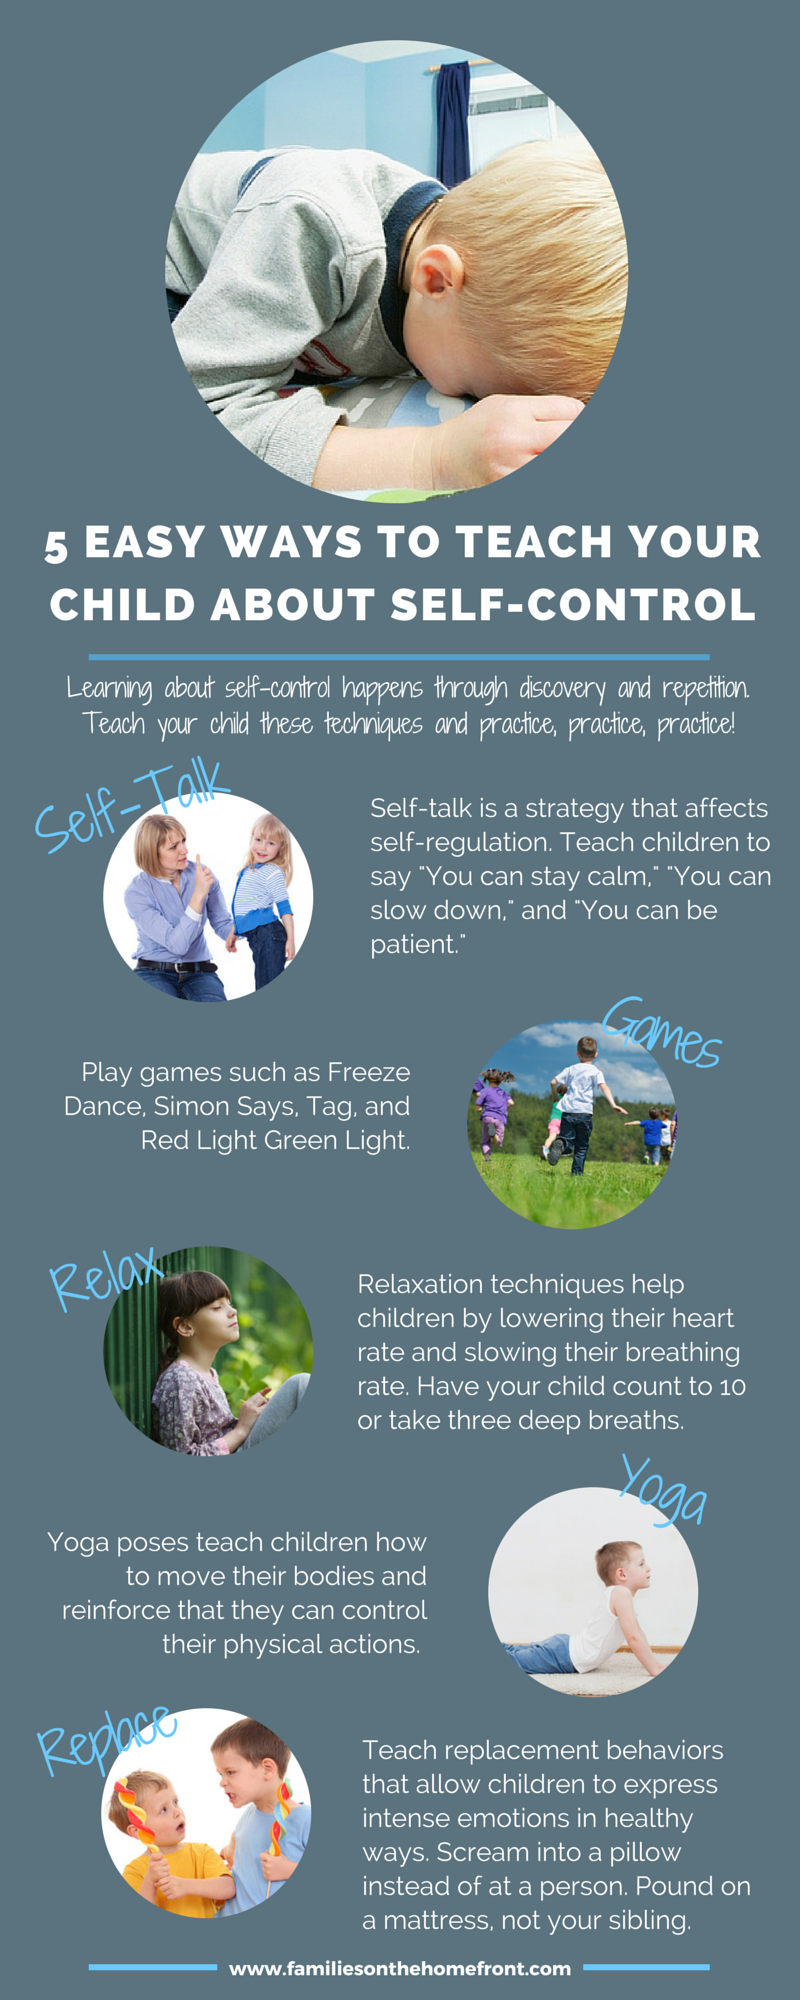 5 Easy Ways To Teach Your Child Self-Control